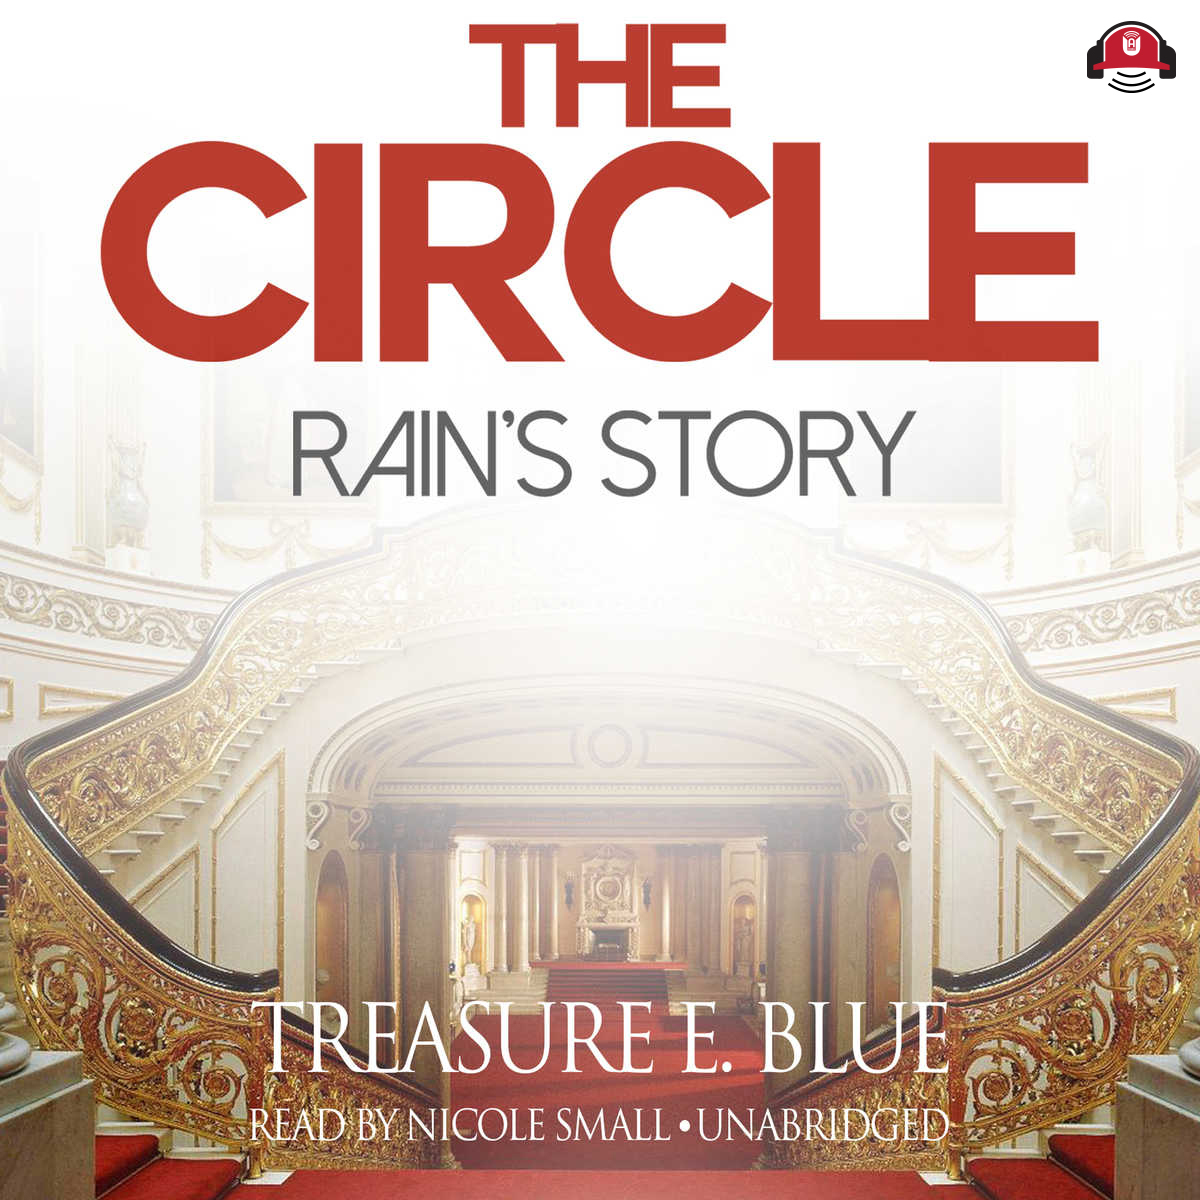 Printable The Circle: Rain's Story Audiobook Cover Art